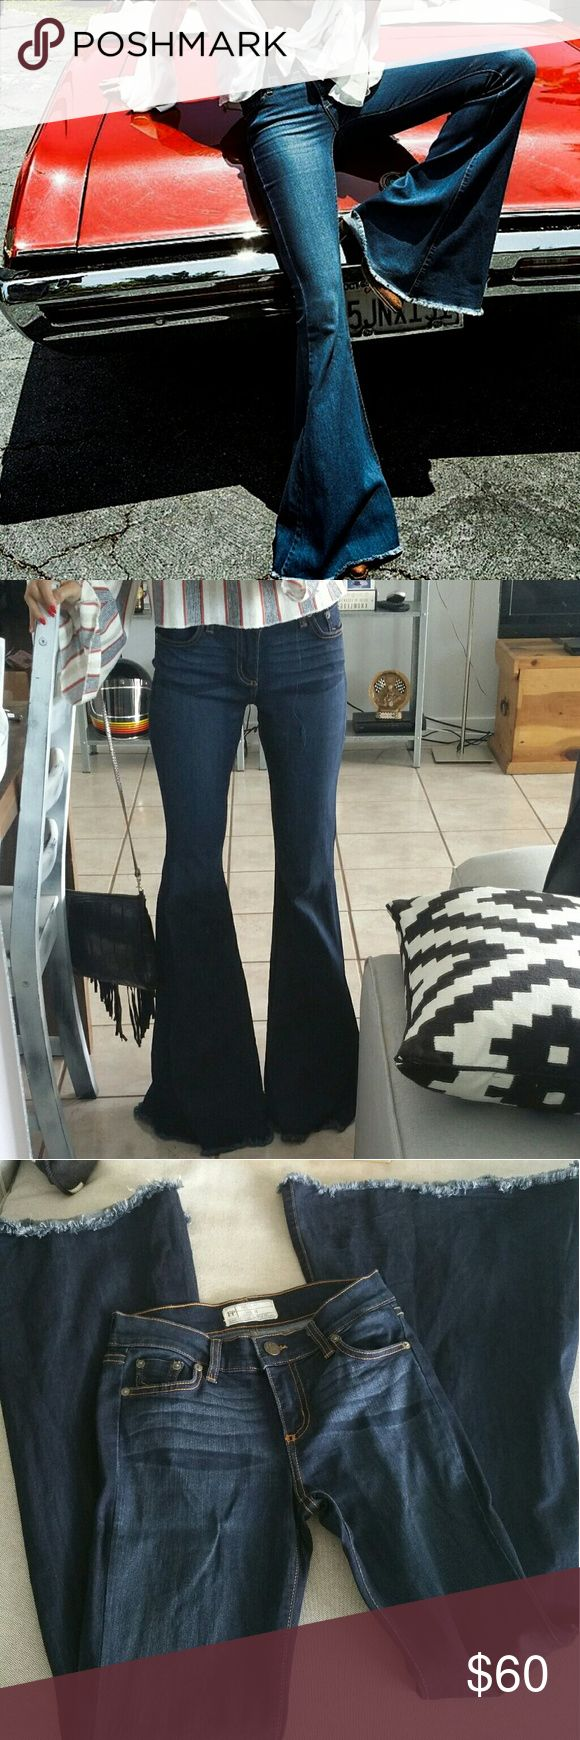 """Free People Super Flare Jeans Size 26 No longer in stores. Super flared jeans. Mid rise. Great skinny fit (they fit tight). Dark blue Ella wash. Only worn a couple of times. Mint condition. Measurements: Waist: aprox 13'' Rise: 8"""" Length: aprox 34"""" Free People Jeans Flare & Wide Leg"""